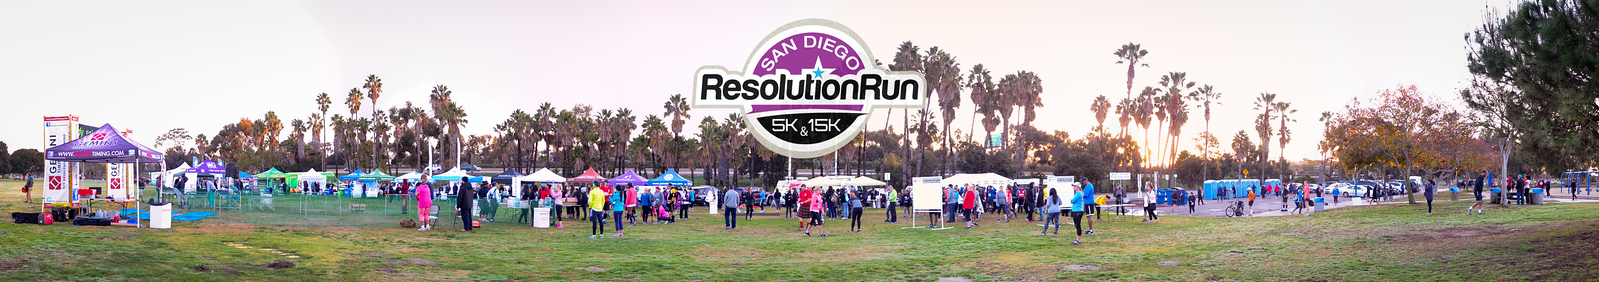 2016 Resolution Run Expo